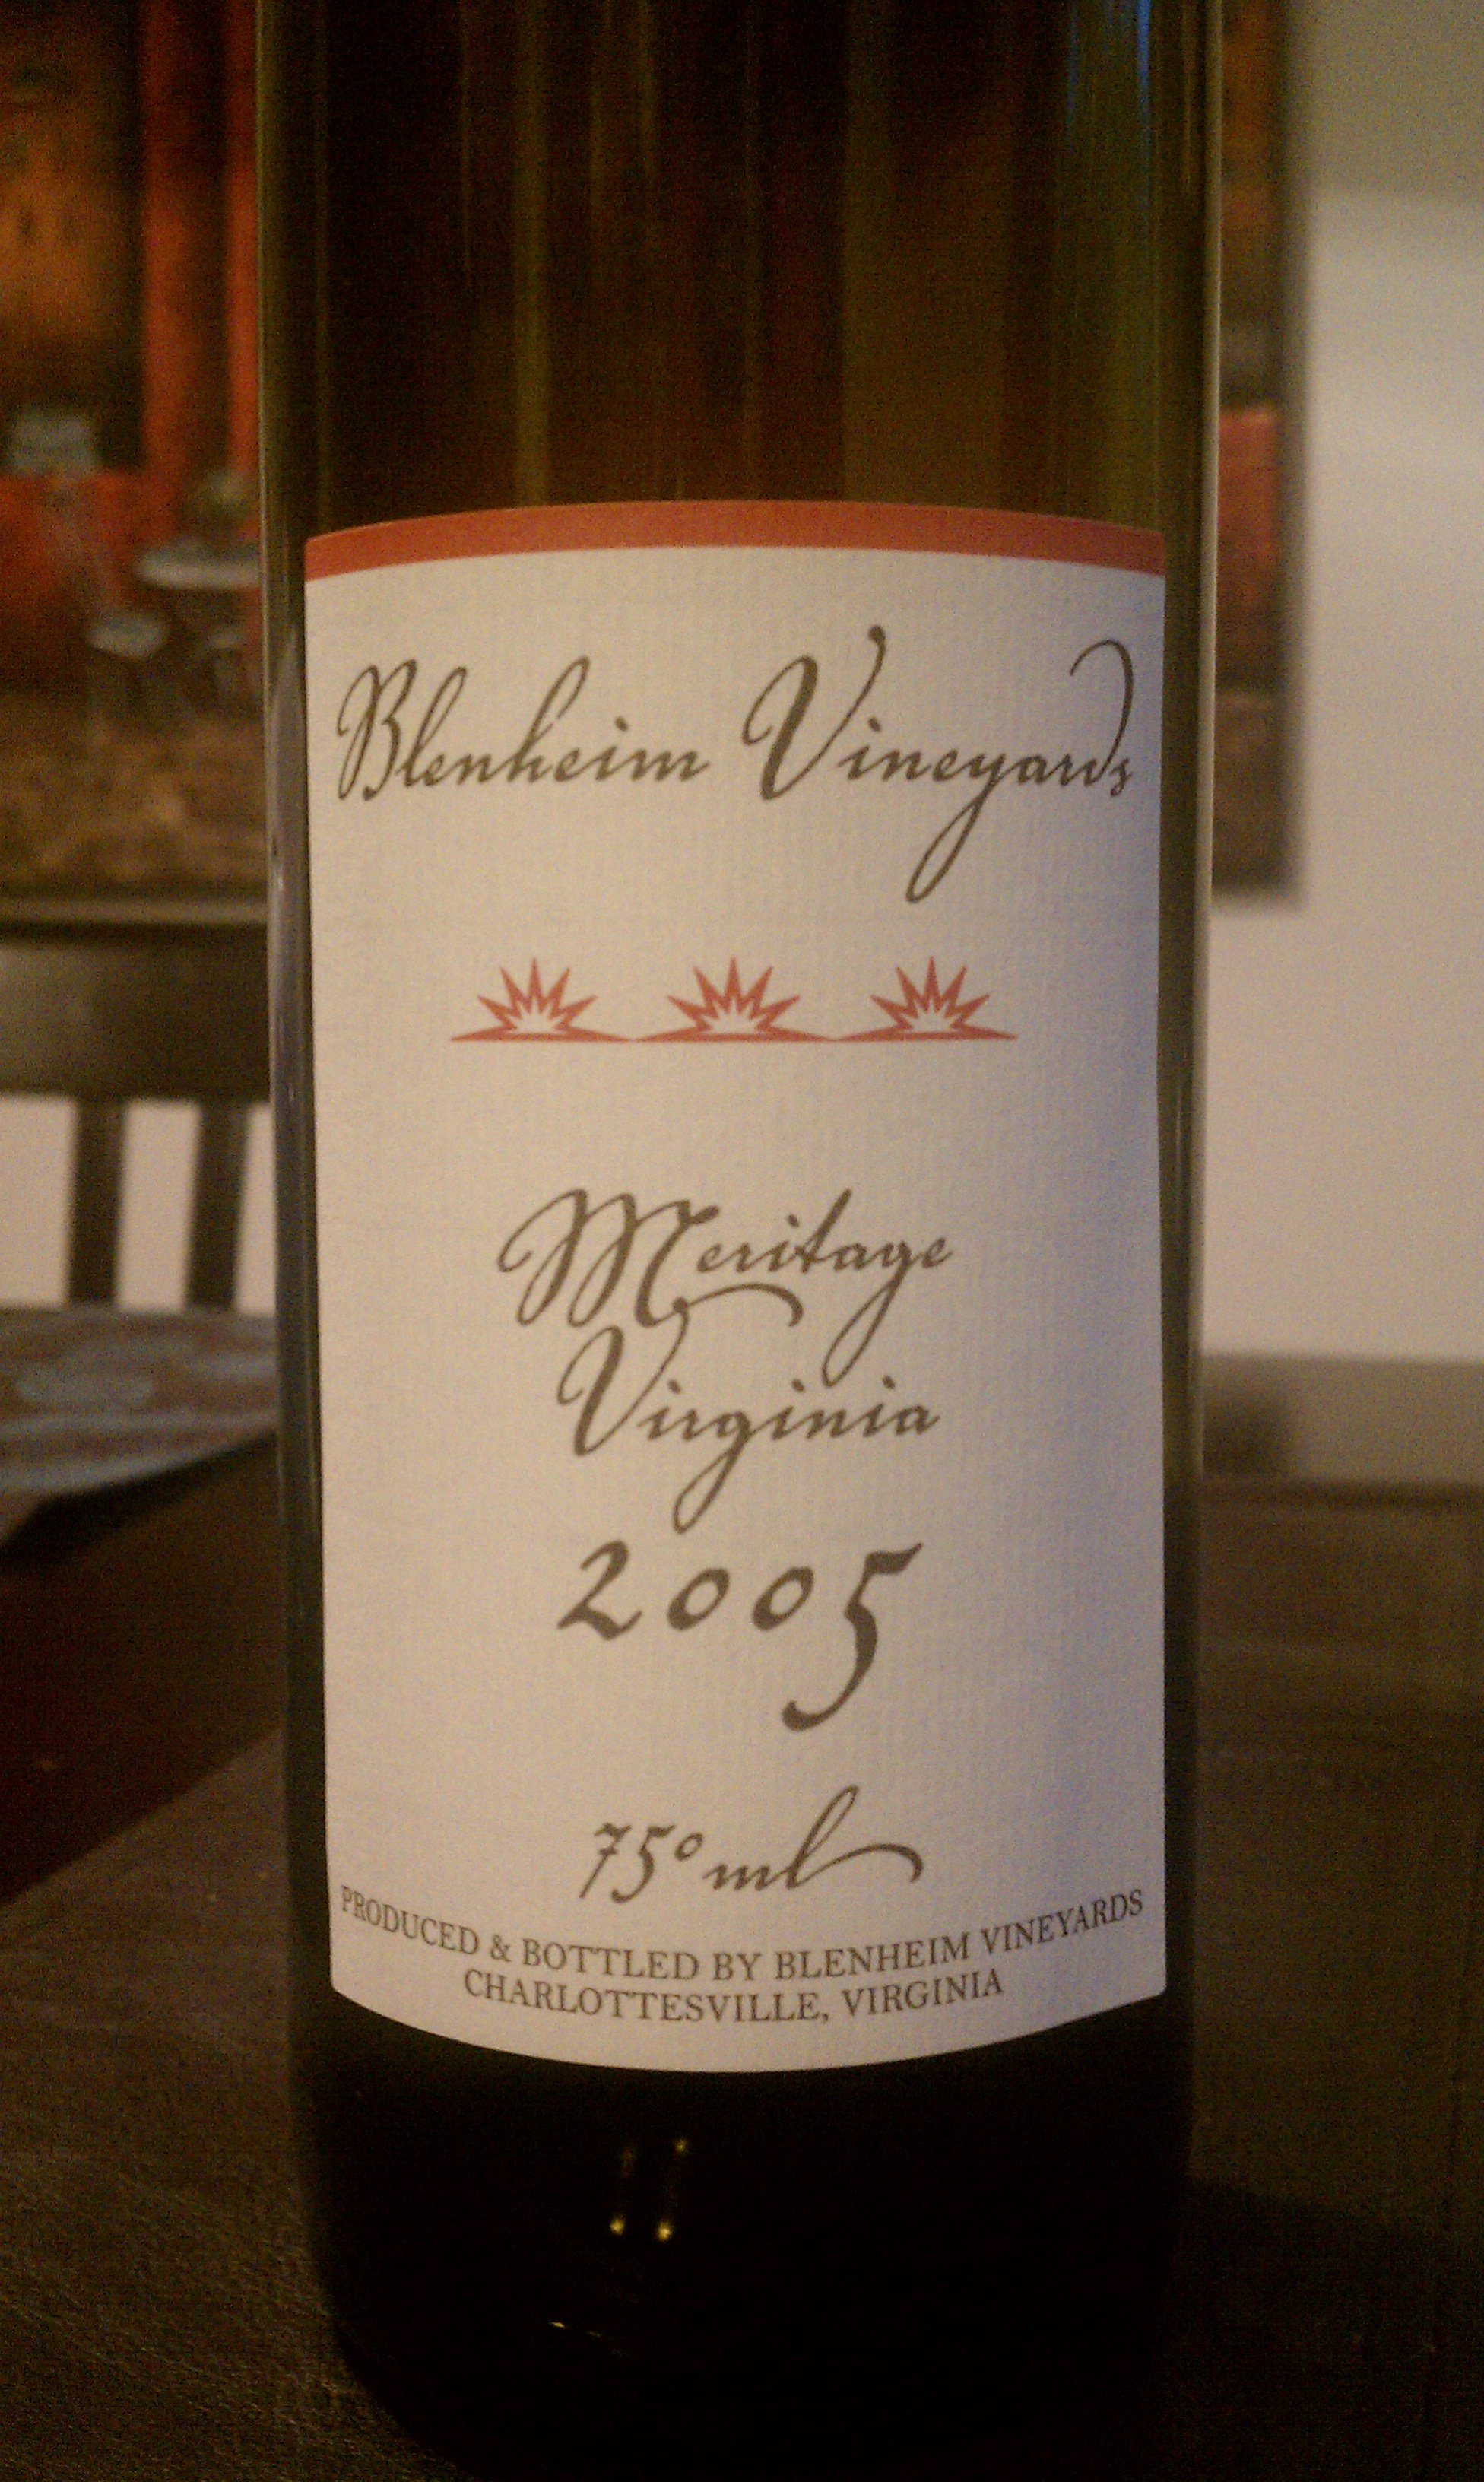 2005 Blenheim Vineyards Meritage